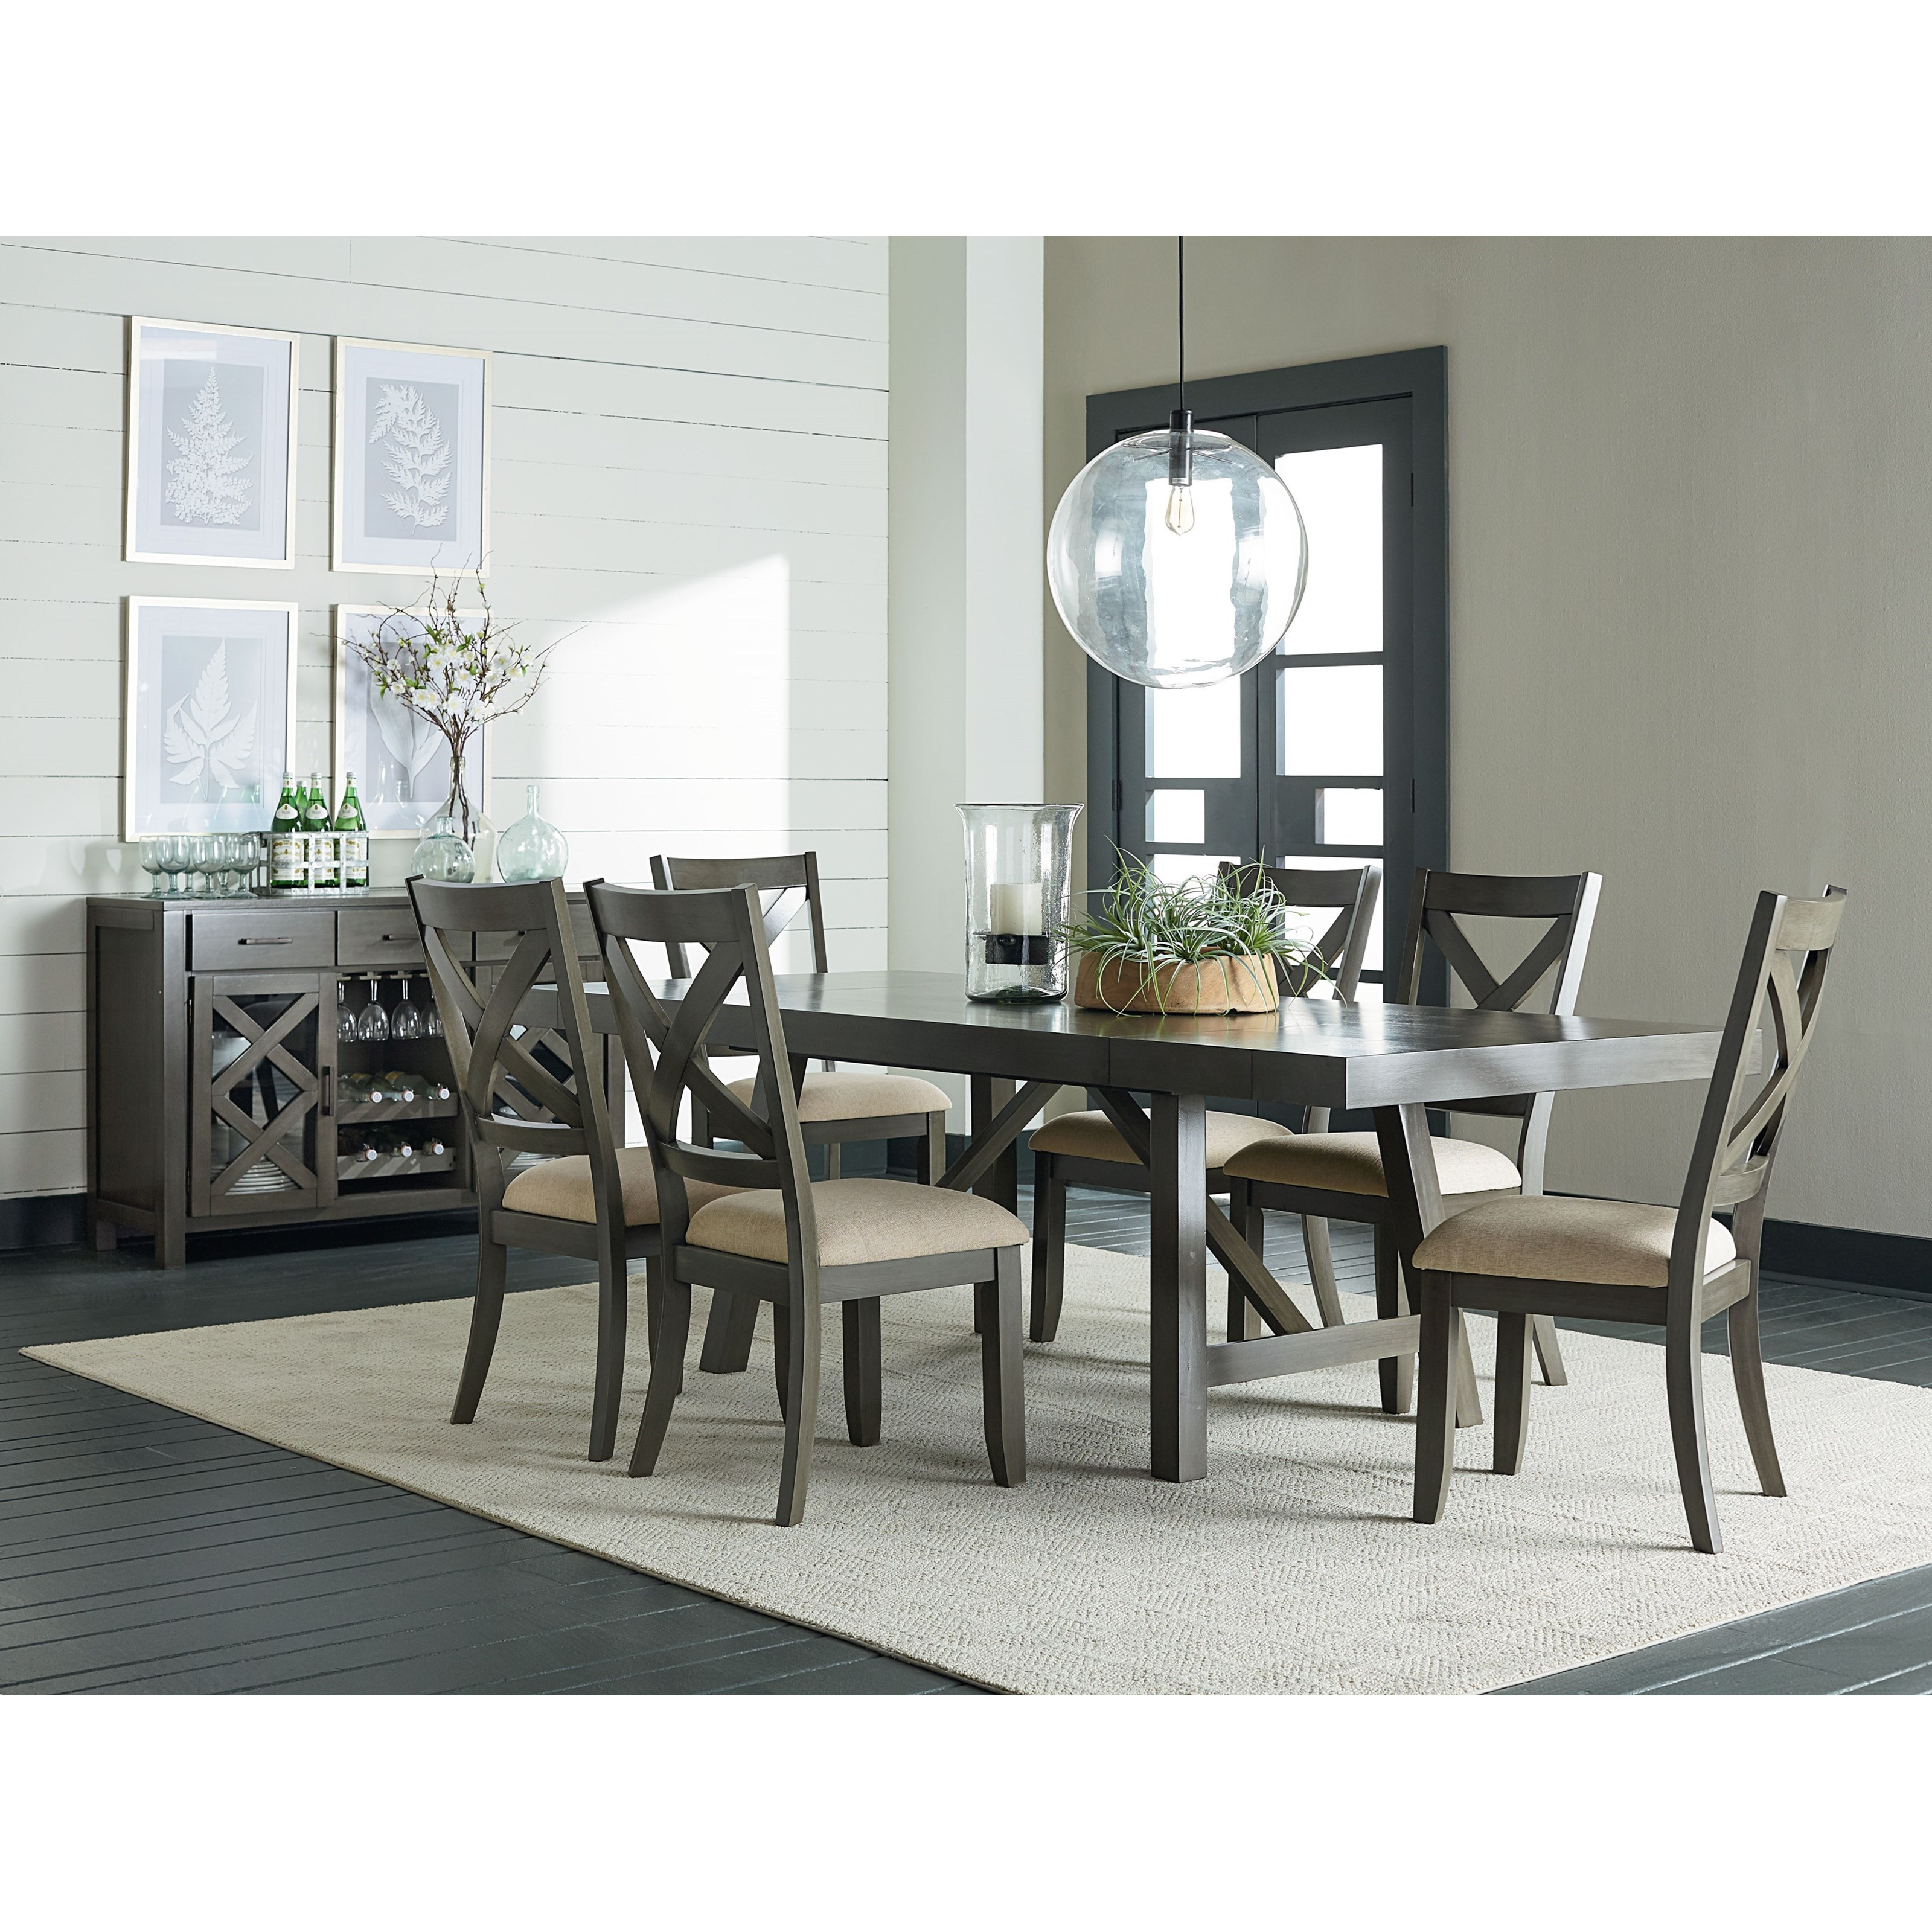 Dining Room Table Leaves: Trestle Dining Room Table With Two Leaves By Standard